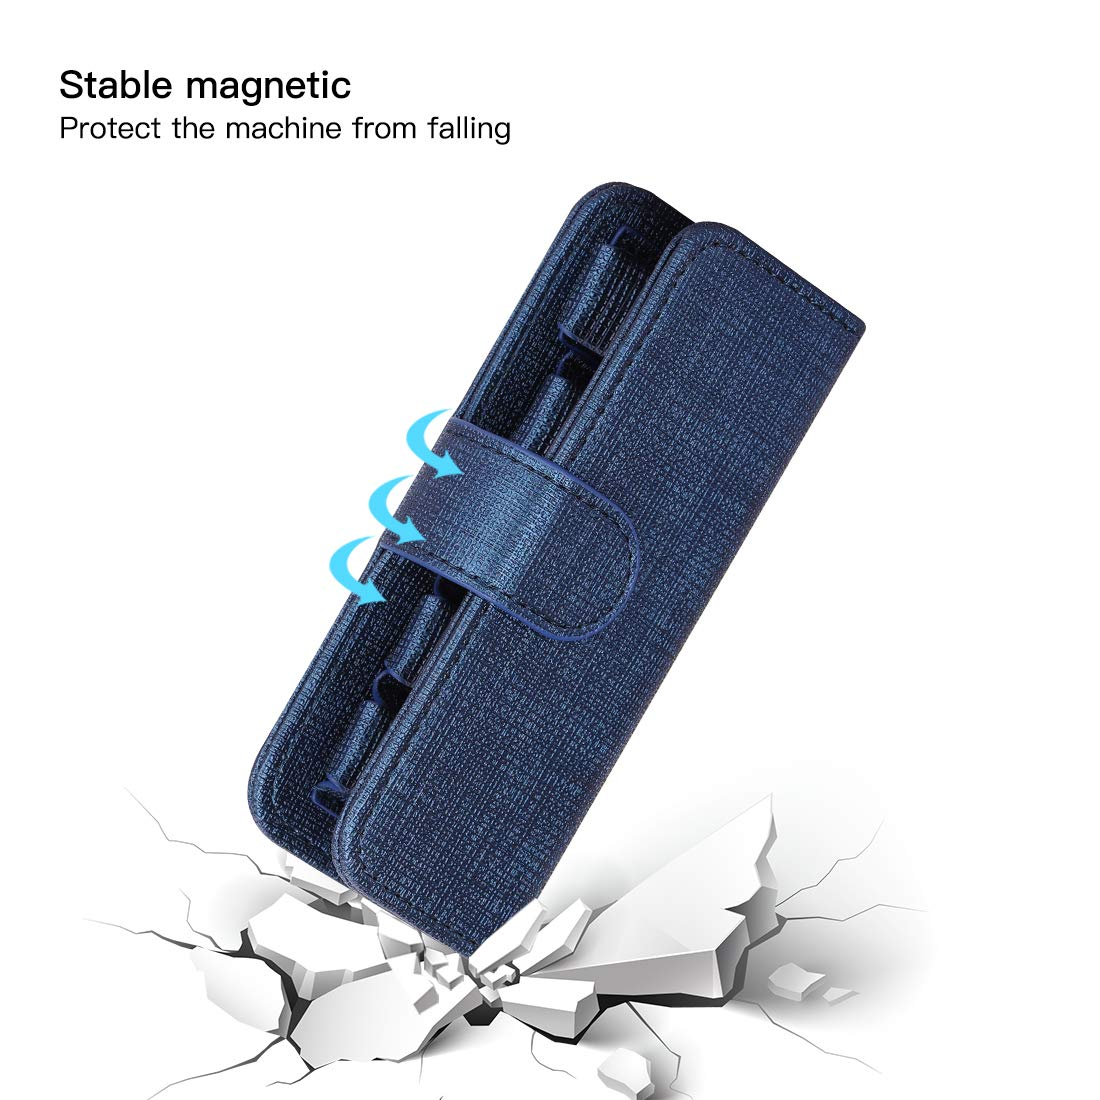 Carrying Case for Juul RELX YOOZ and Most Small Pen Devices Pods Blue Hold Protective Podcase Organizer Bag Round Portable EVA Wallet Bag Waterproof Shockproof Traveling Storage Bag